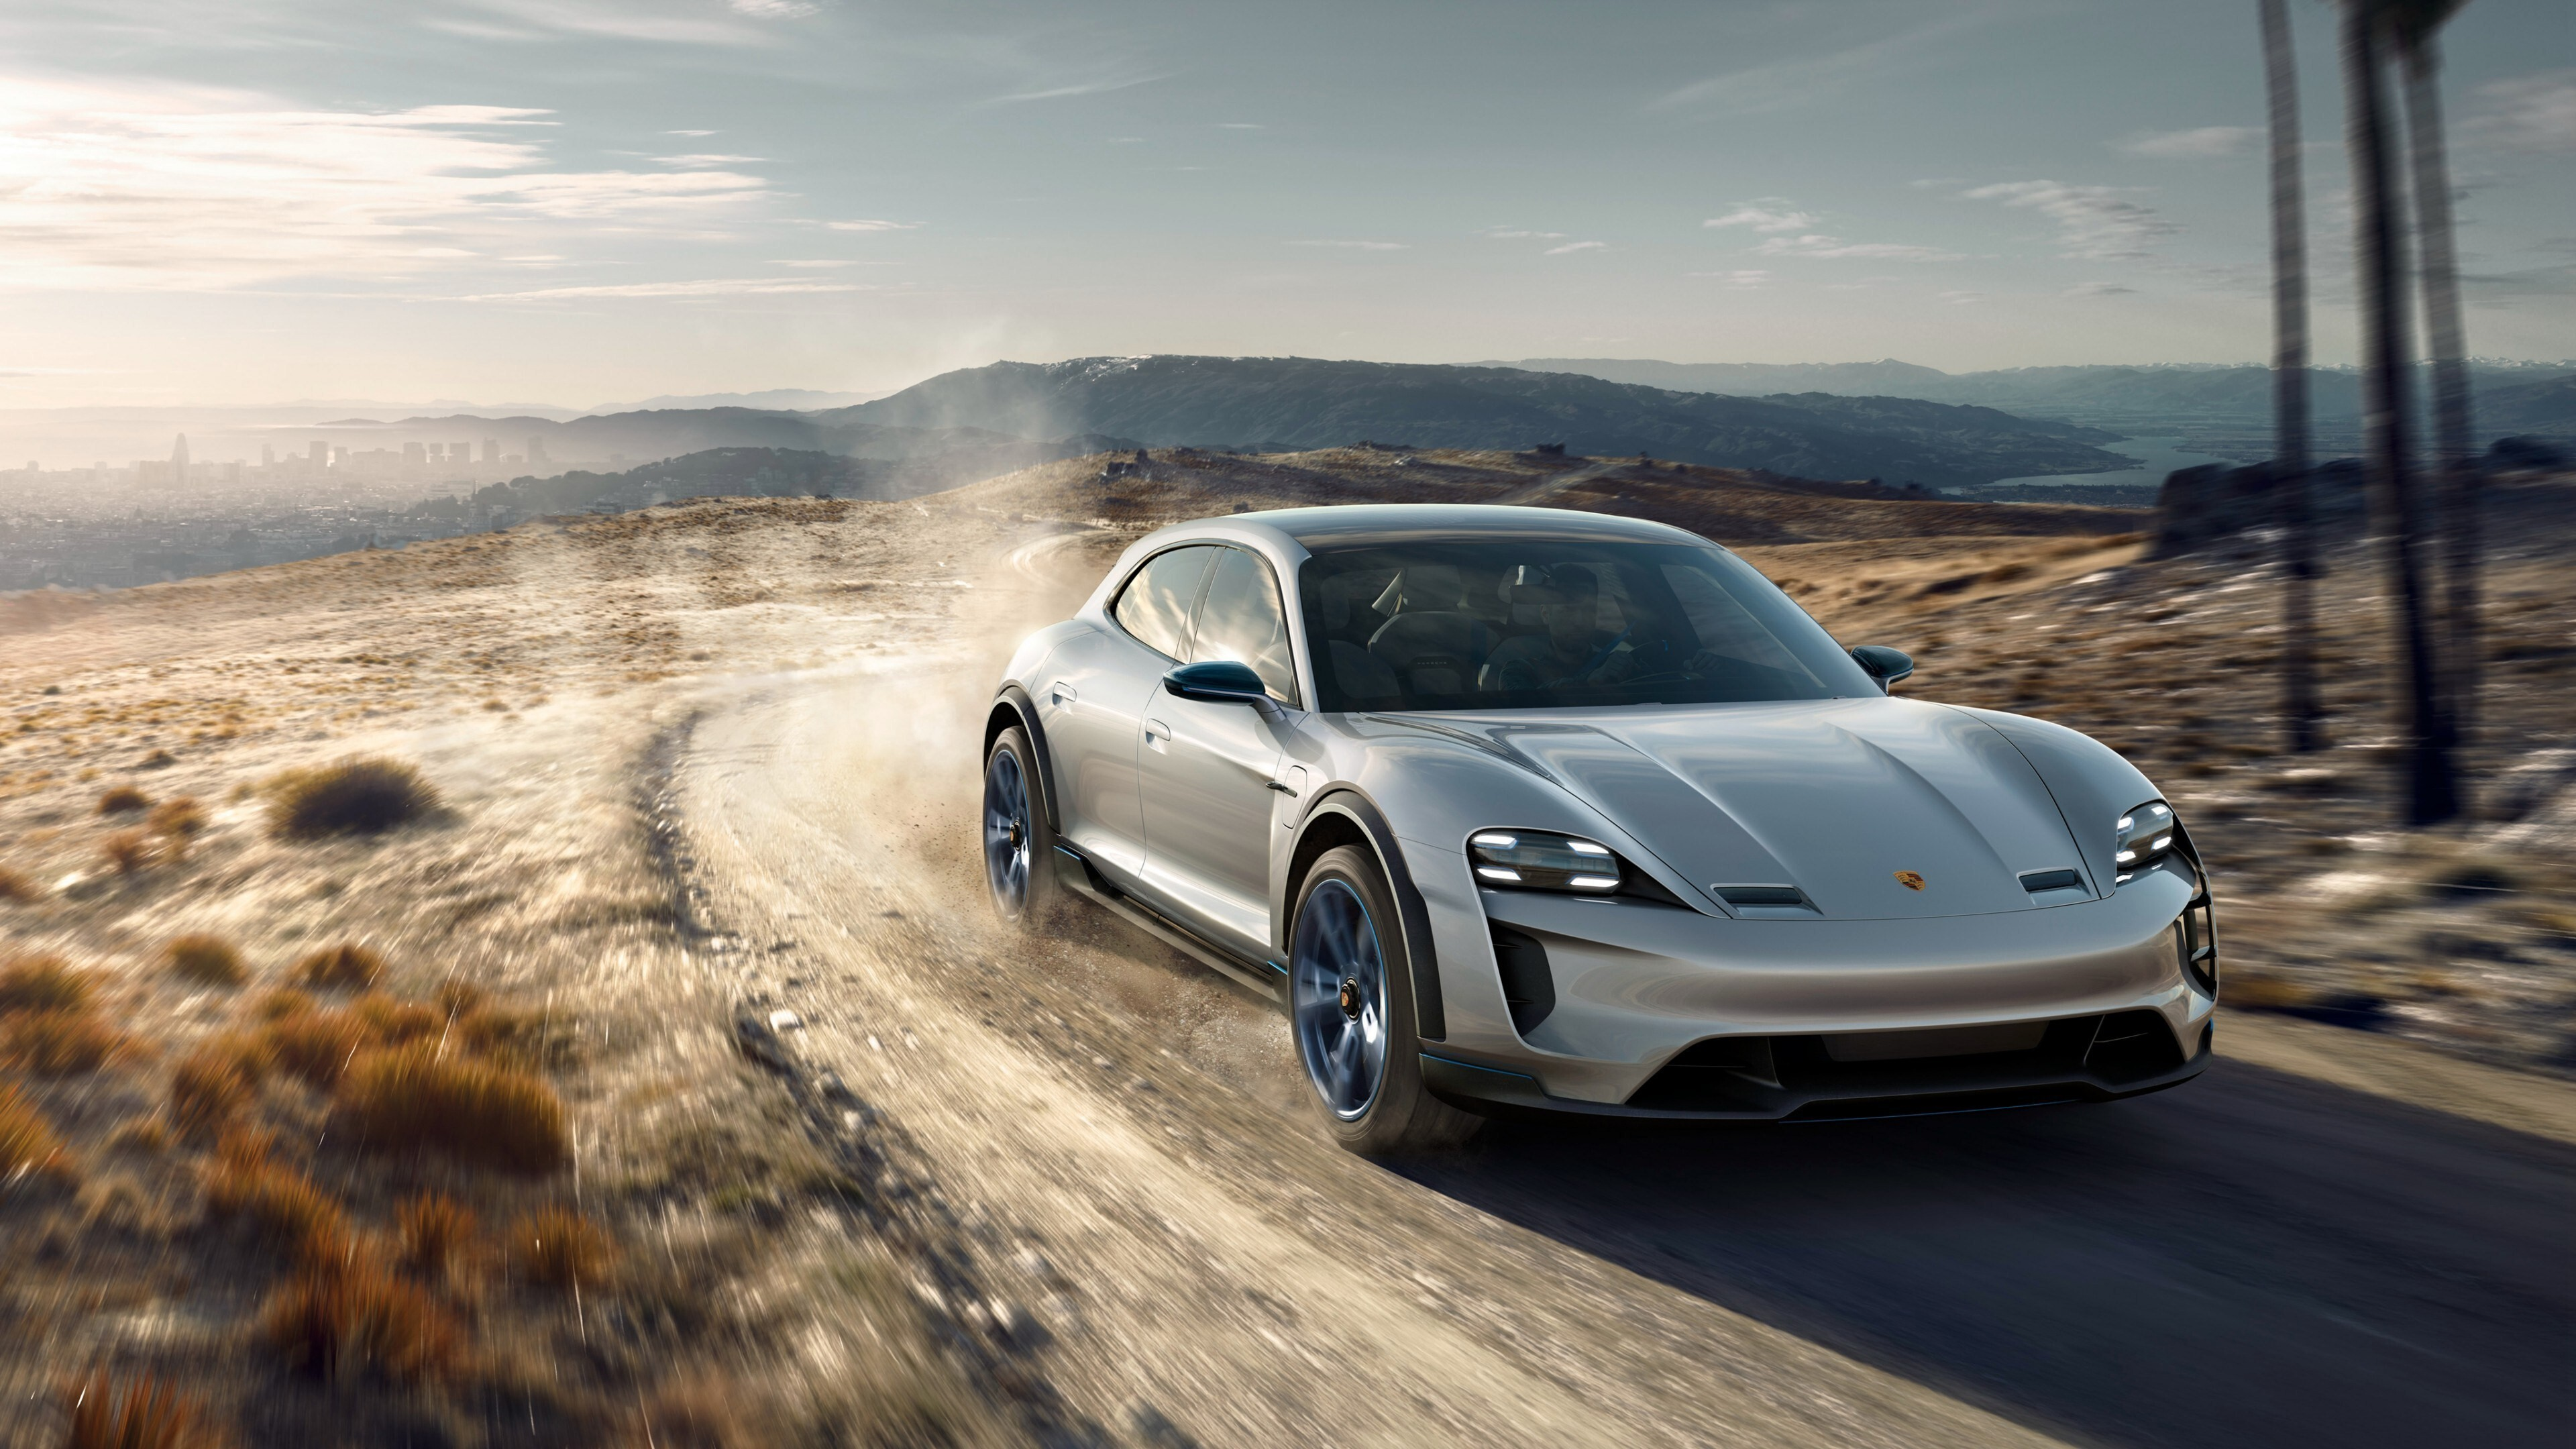 4k Wallpaper Of 2019 Porsche Mission E Car Hd Wallpapers